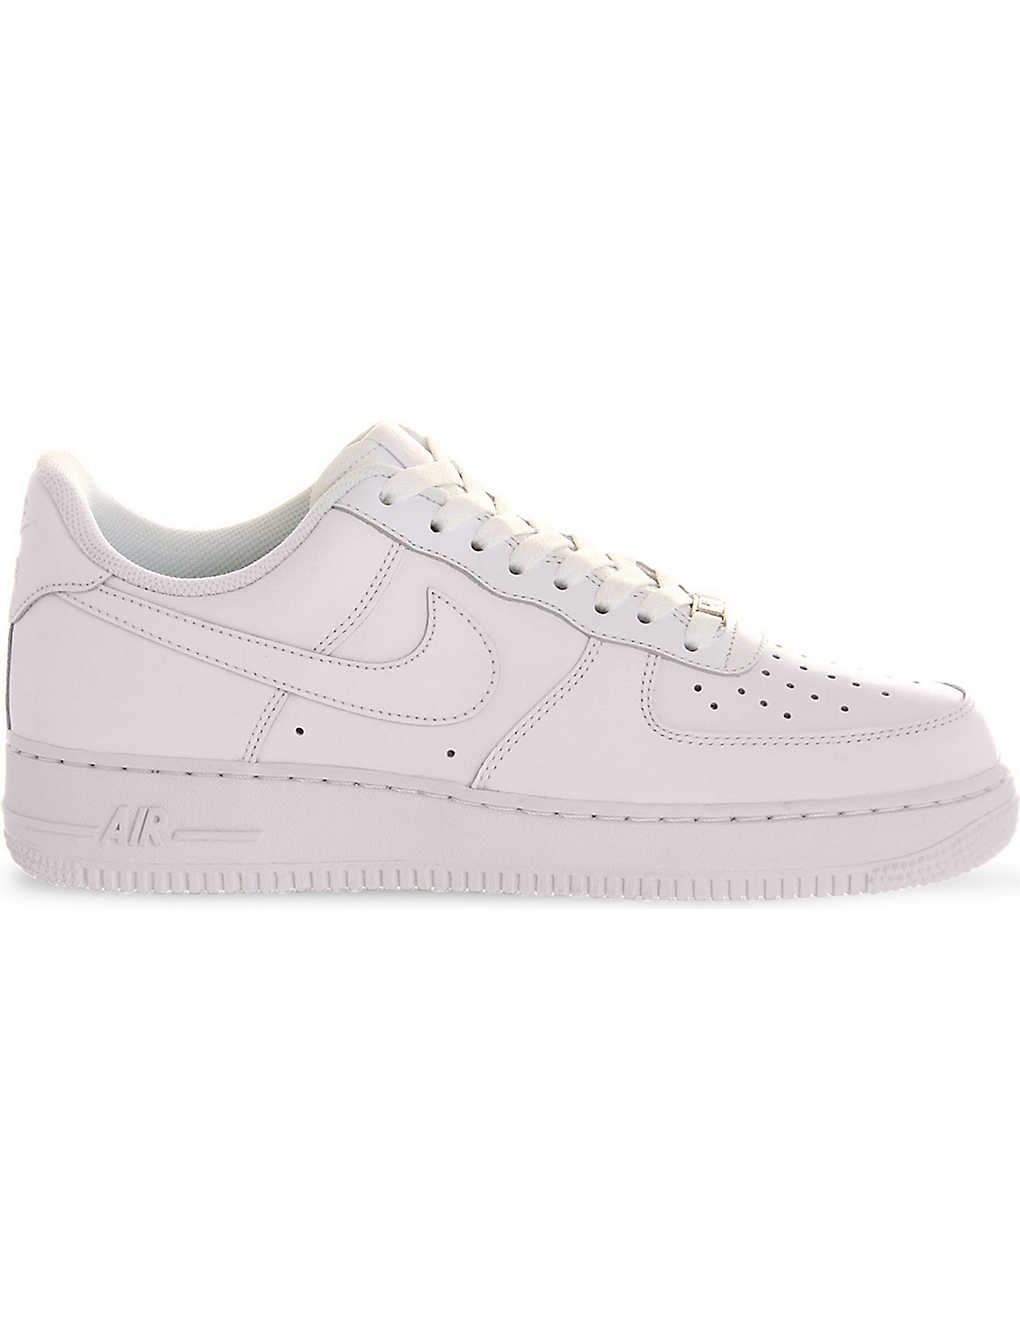 best sneakers d24d0 59738 NIKE Air force 1 trainers